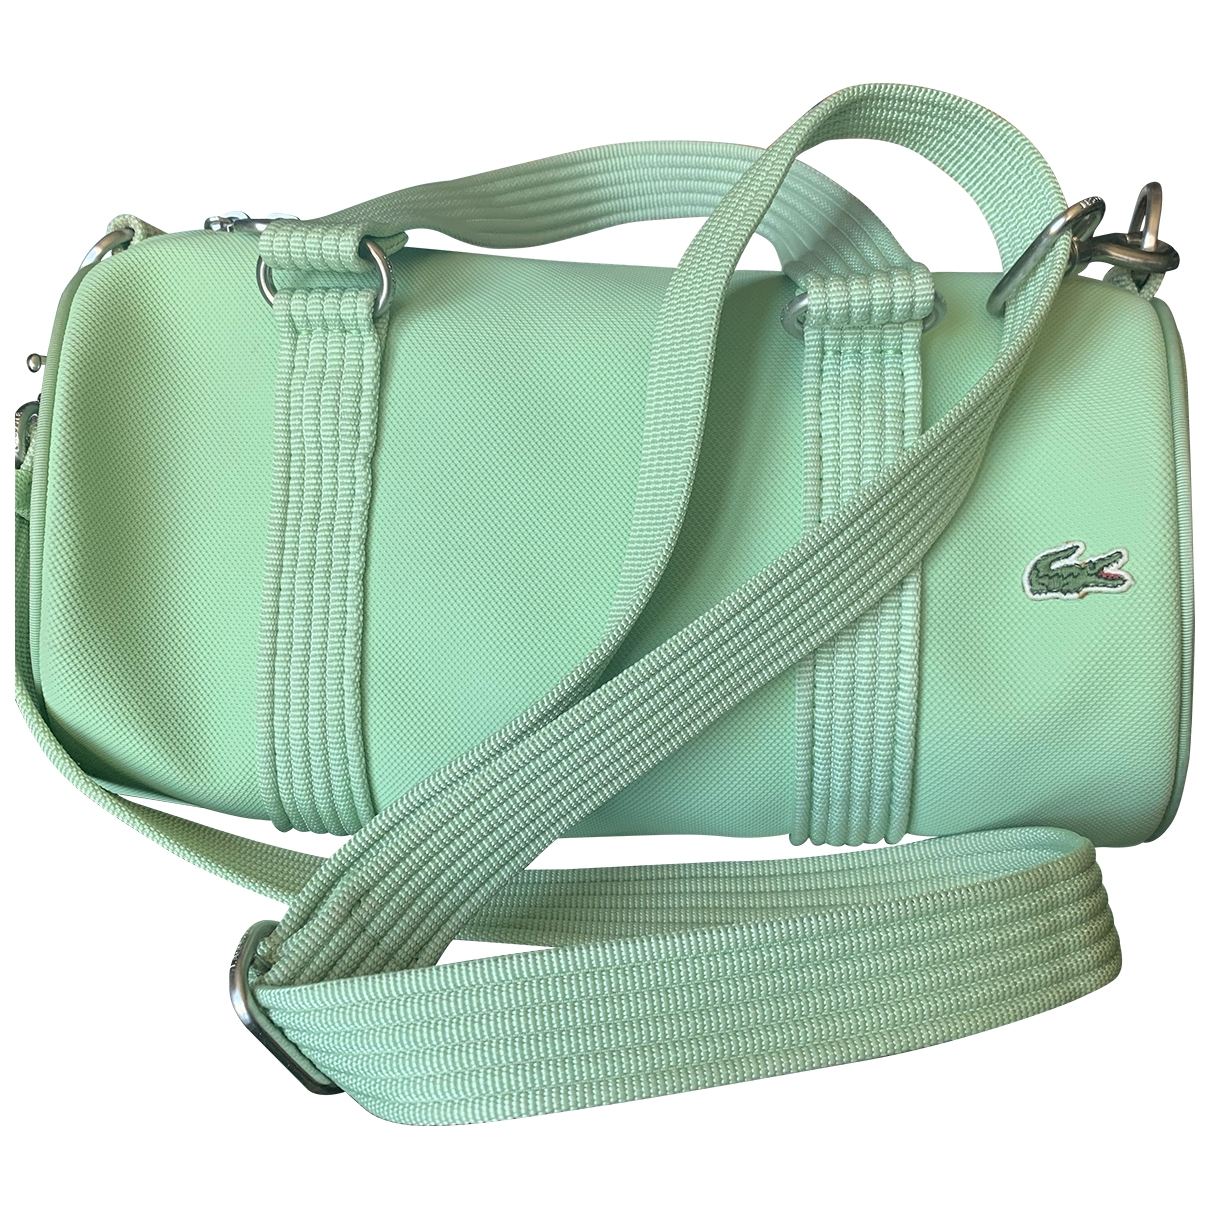 Lacoste \N Green handbag for Women \N